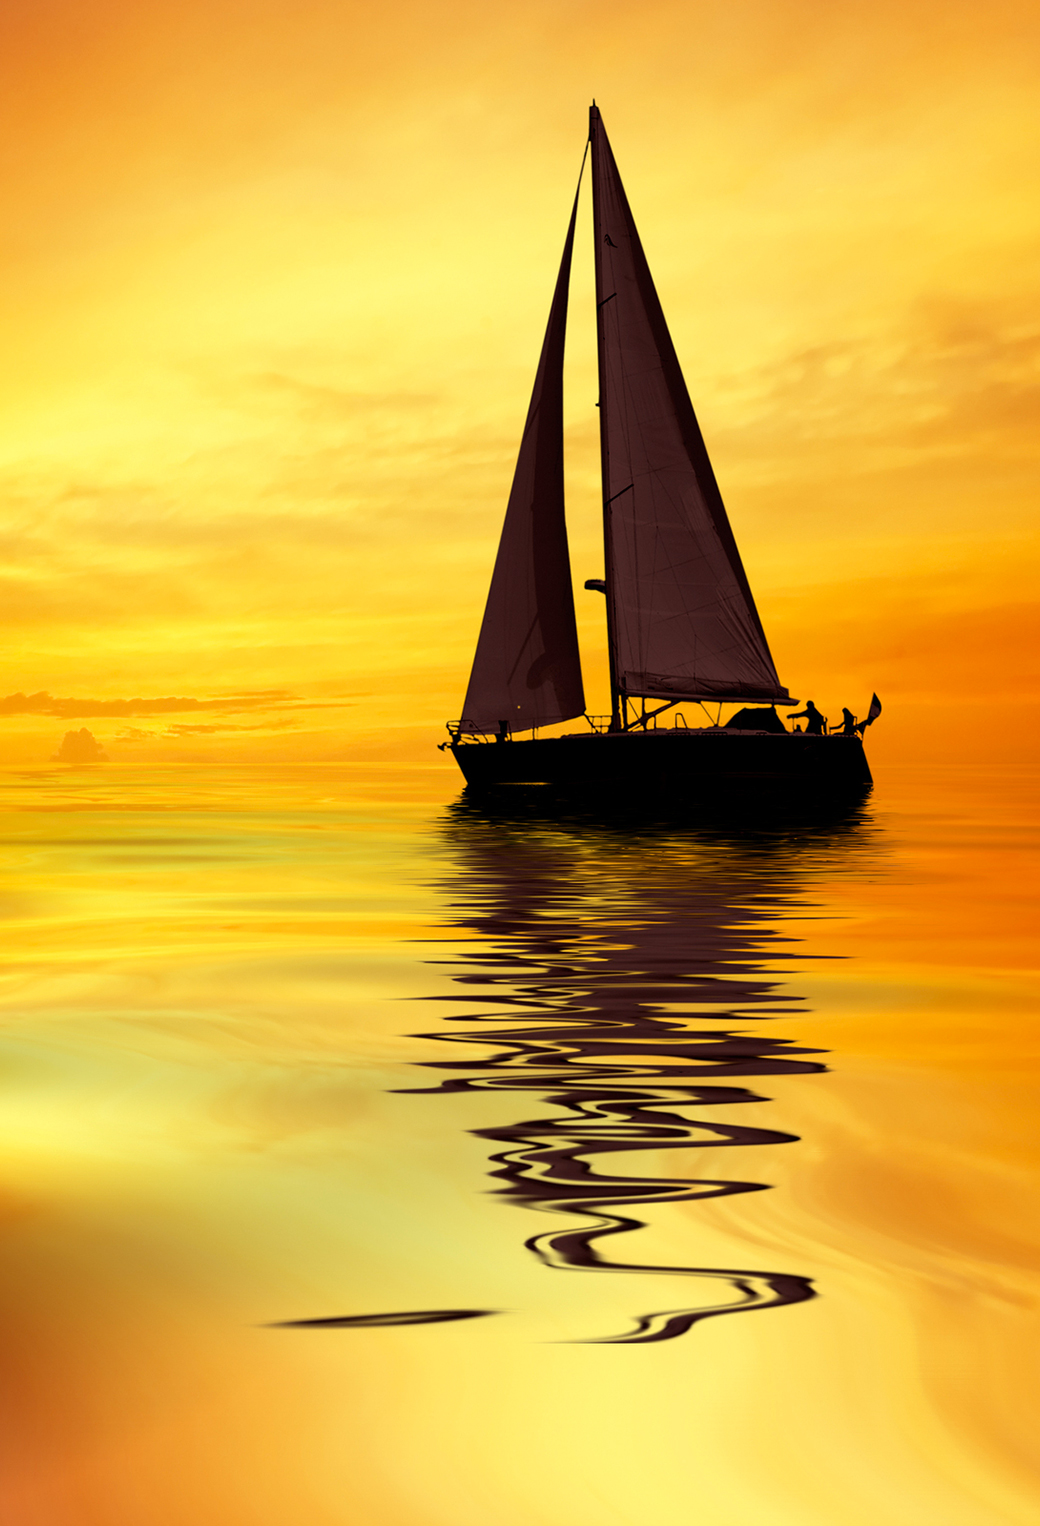 Sailboat Sunshine 3Wallpapers iPhone Parallax Sailboat Sunshine